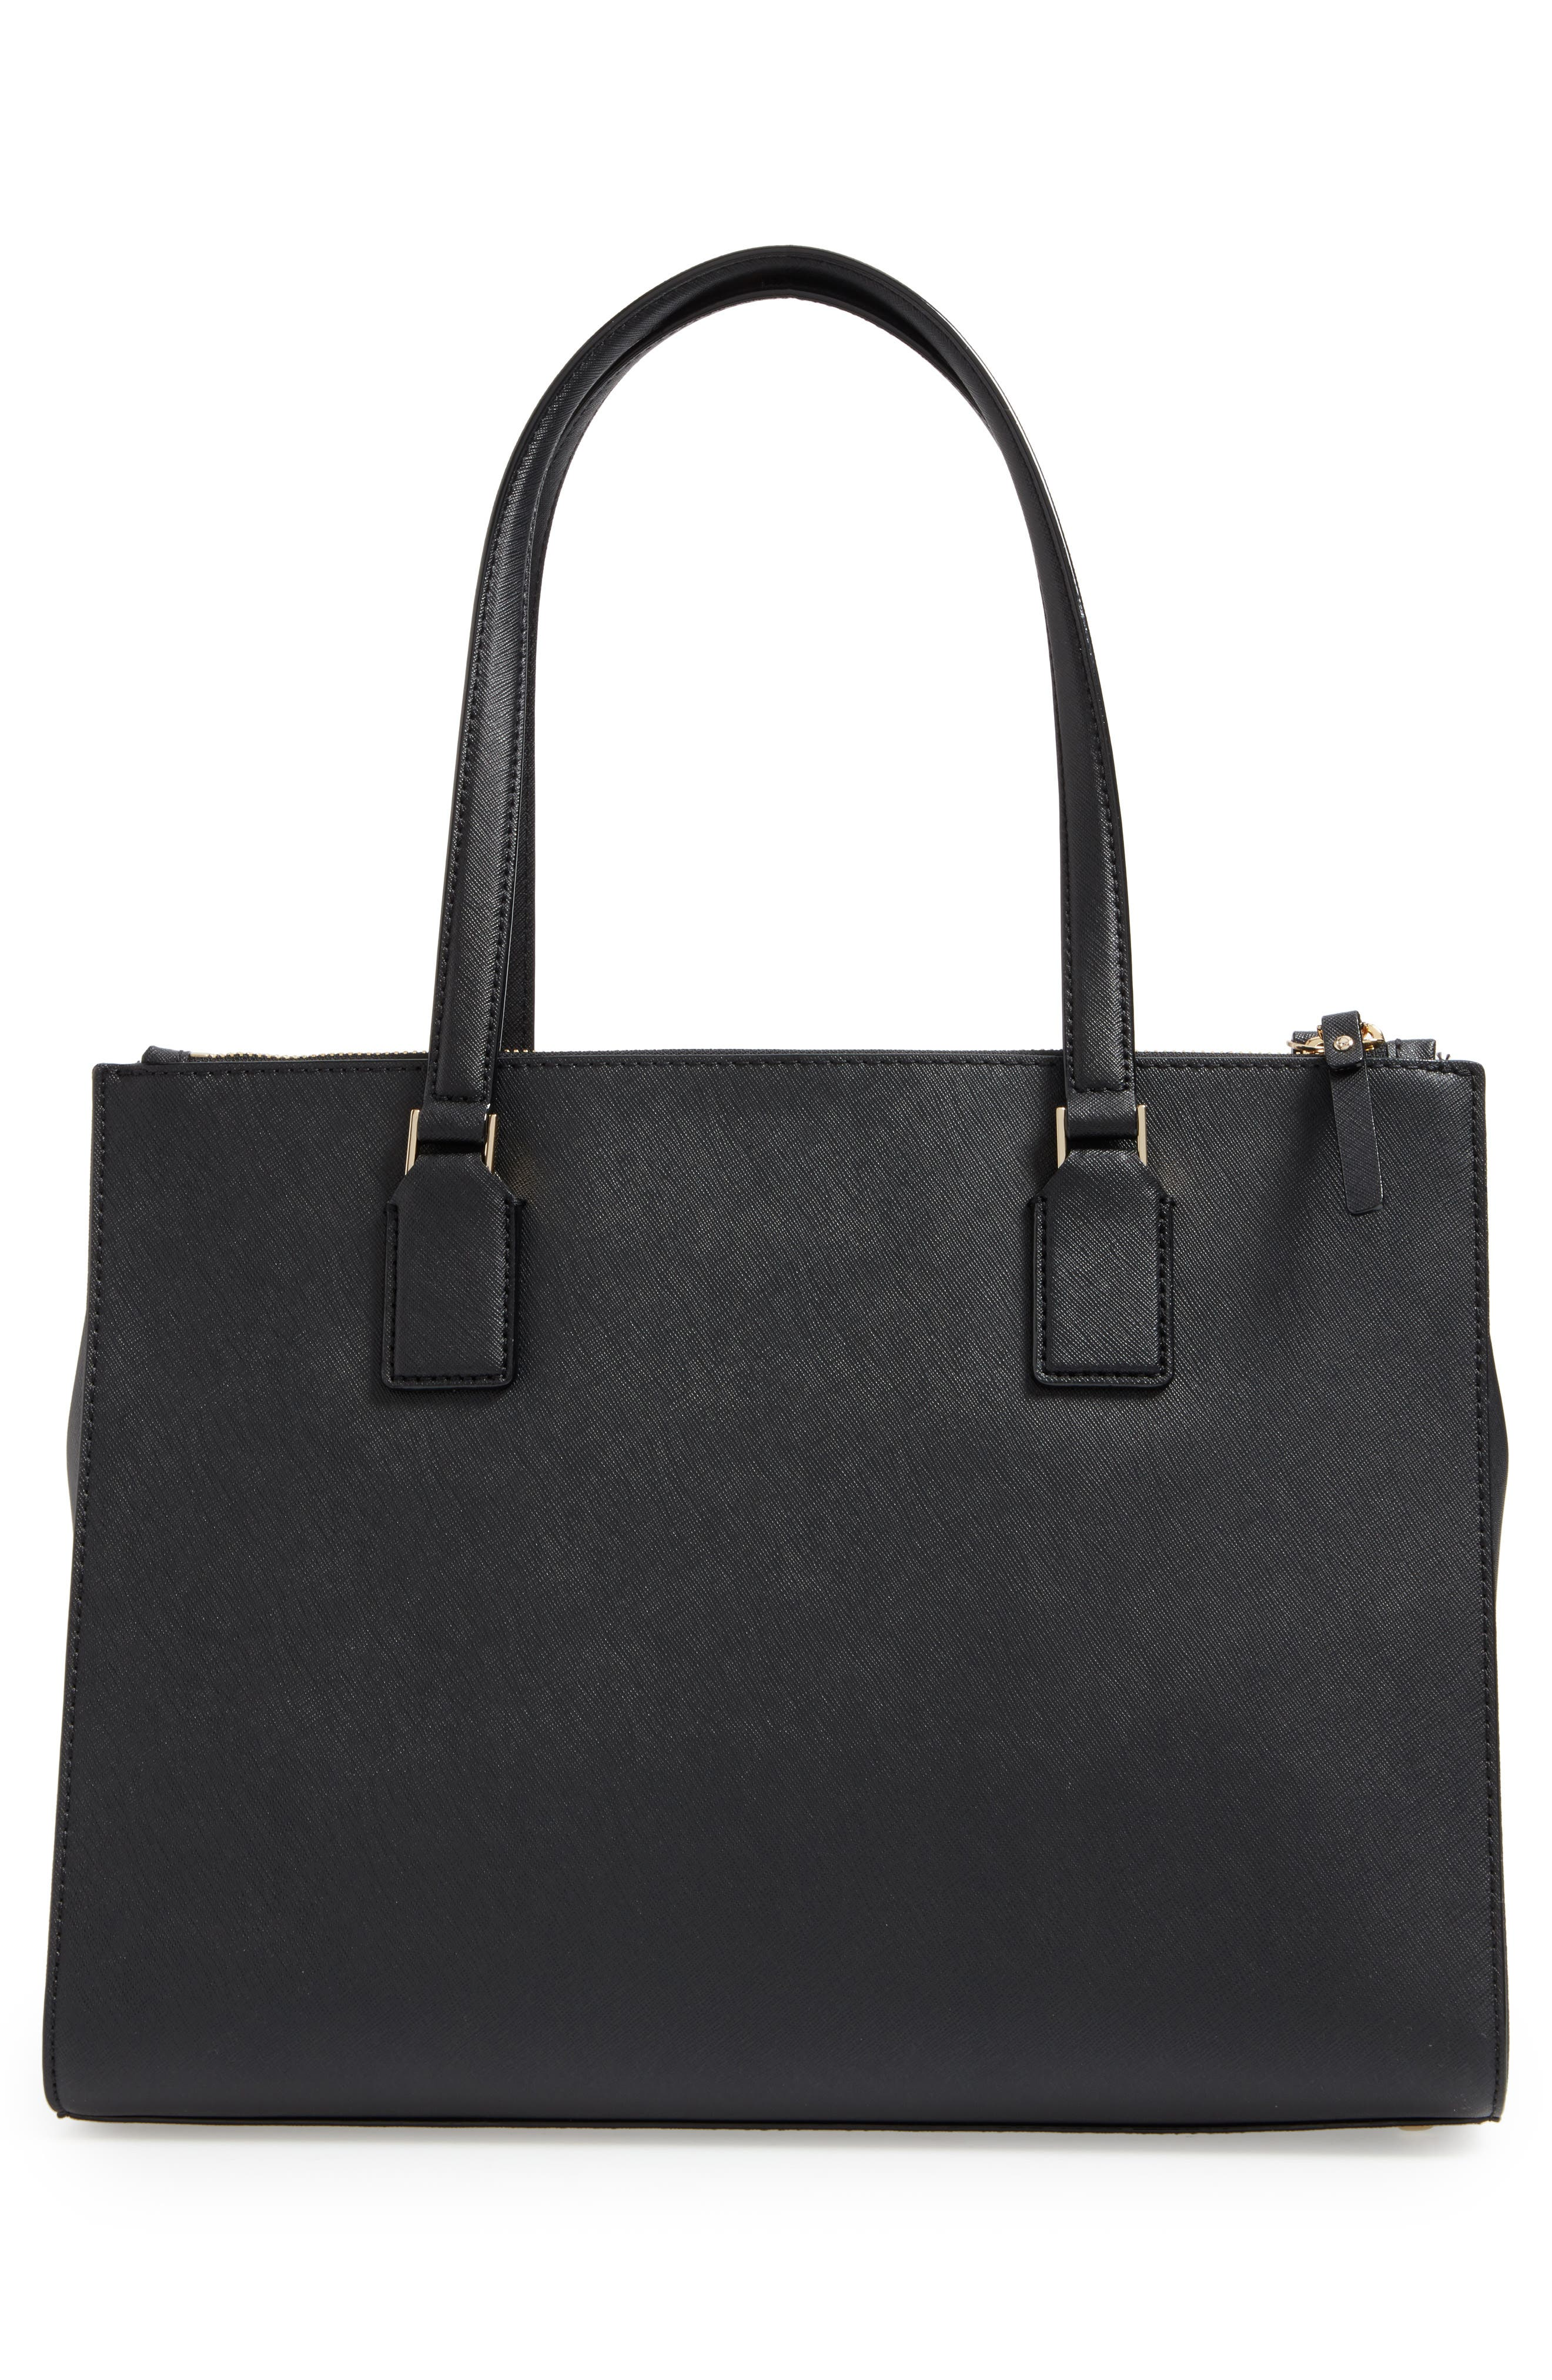 cameron street - jensen leather tote,                             Alternate thumbnail 3, color,                             001